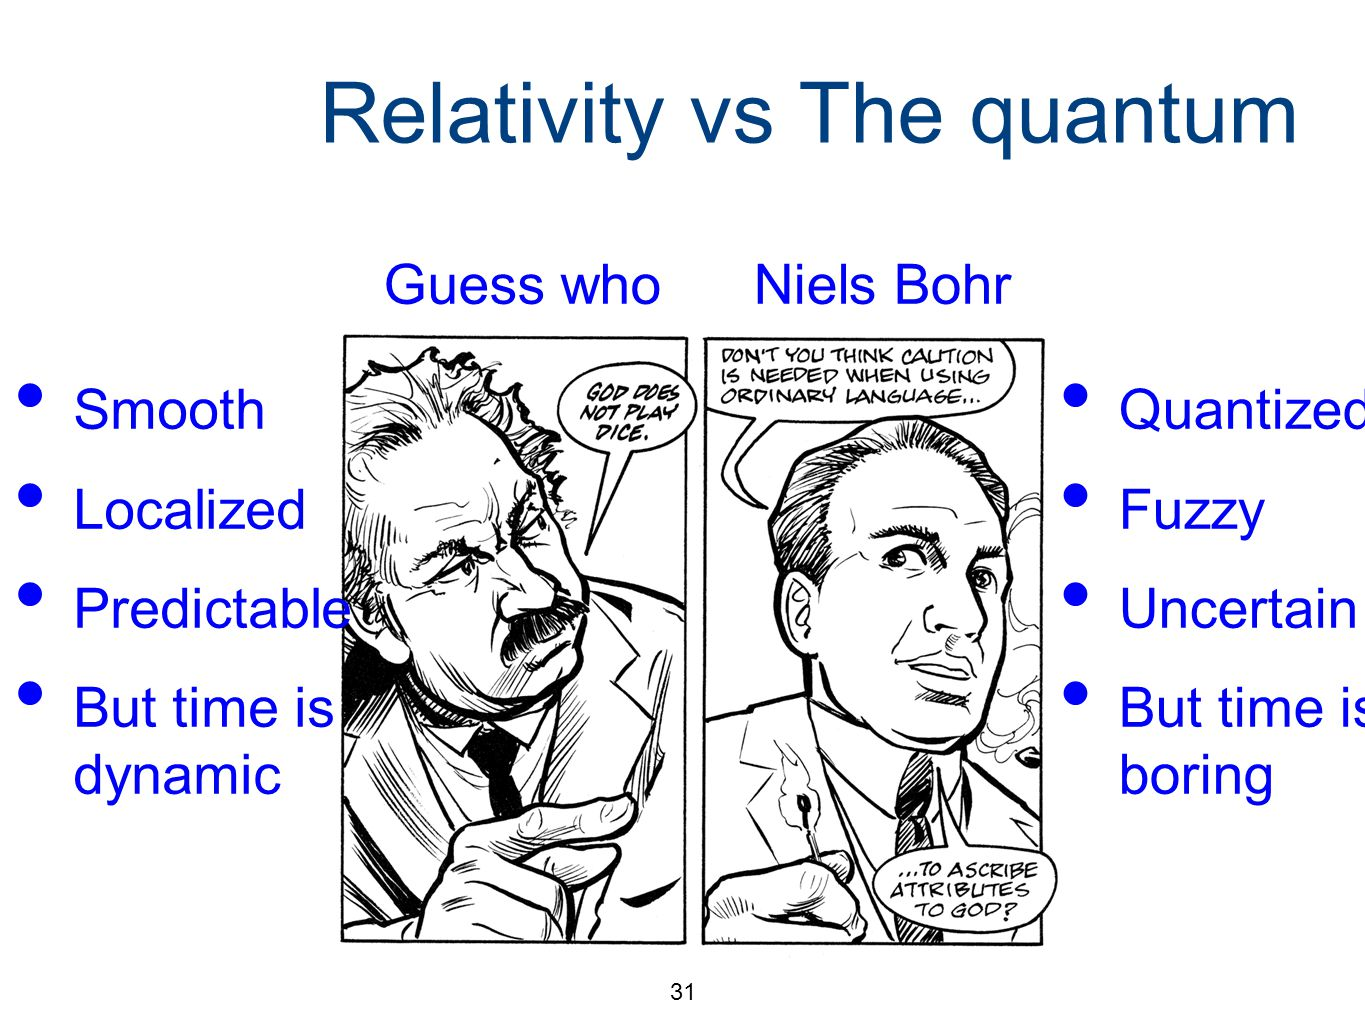 31 Relativity vs The quantum Niels BohrGuess who Smooth Localized Predictable But time is dynamic Quantized Fuzzy Uncertain But time is boring